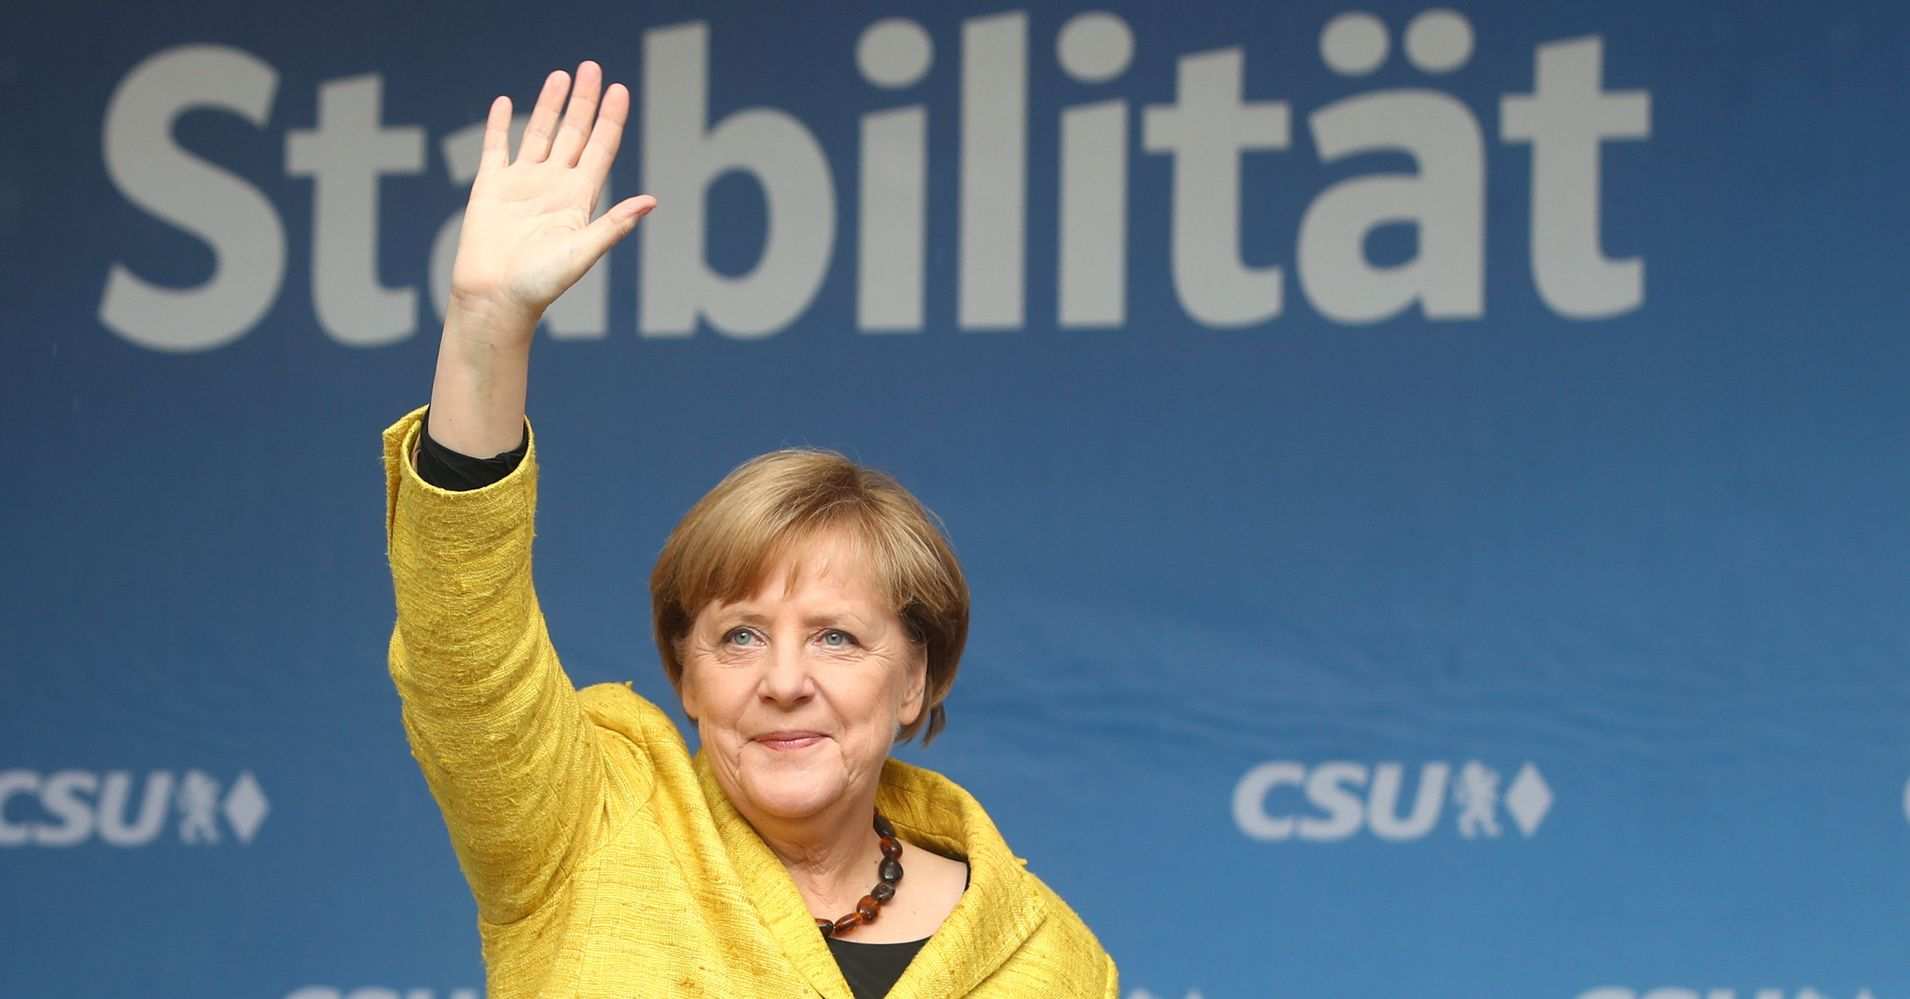 Merkel Wins Fourth Term As Chancellor In German Election